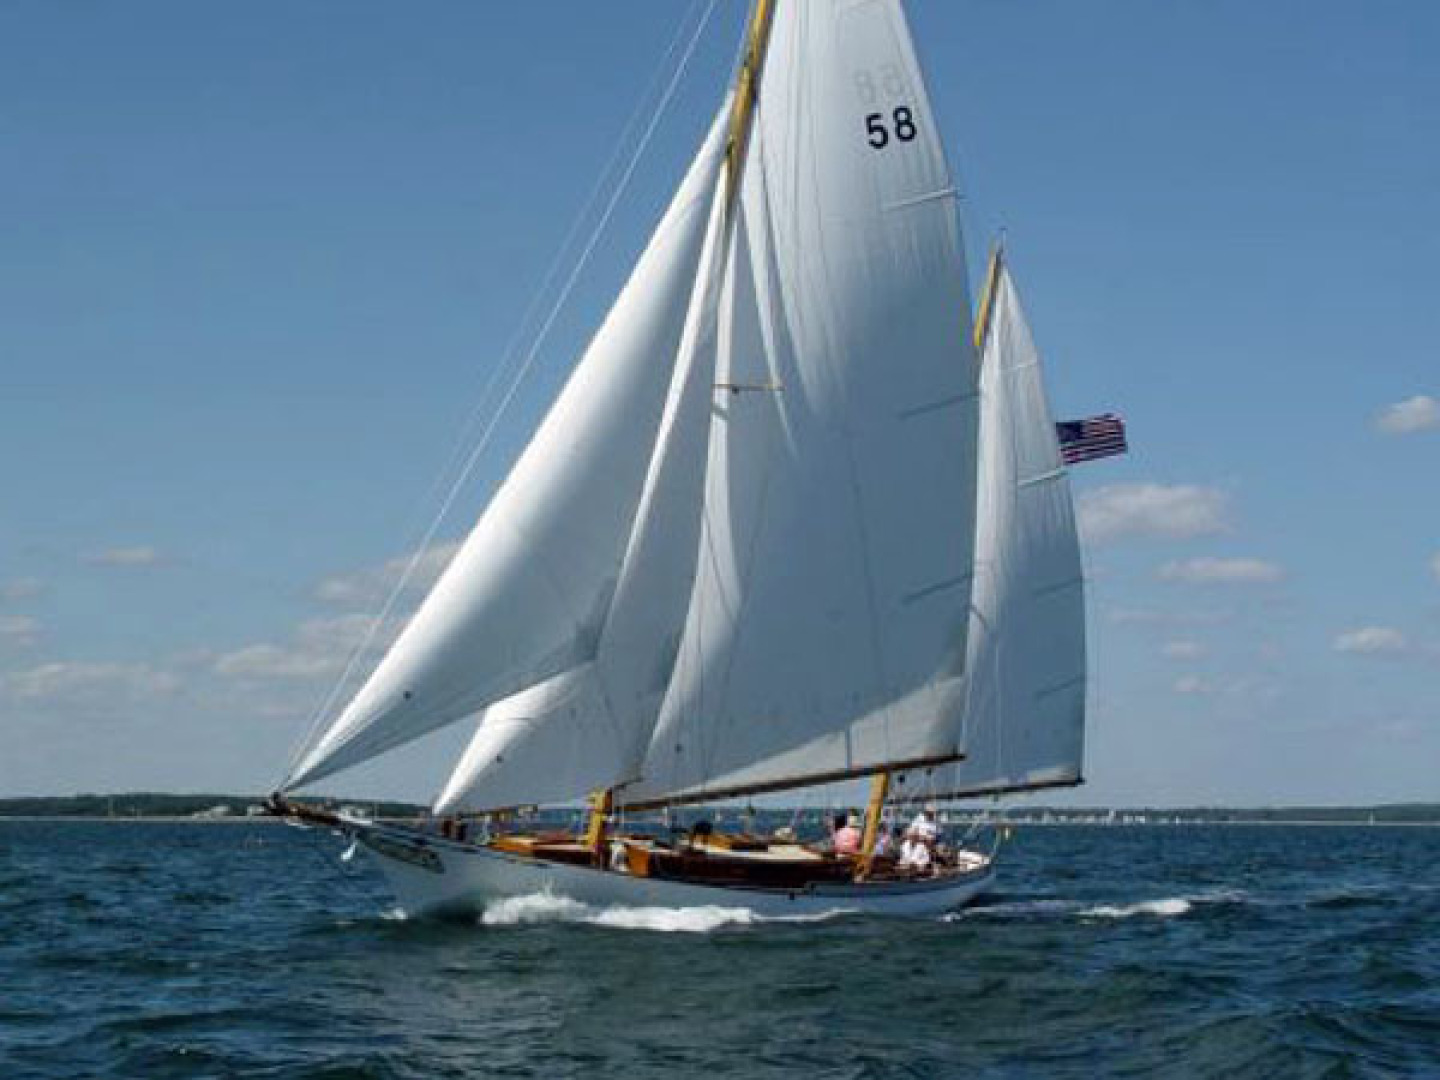 Herreshoff-Bounty 58 2004-CATRIONA Mattapoisett-Massachusetts-United States-Sailing-1560610 | Thumbnail